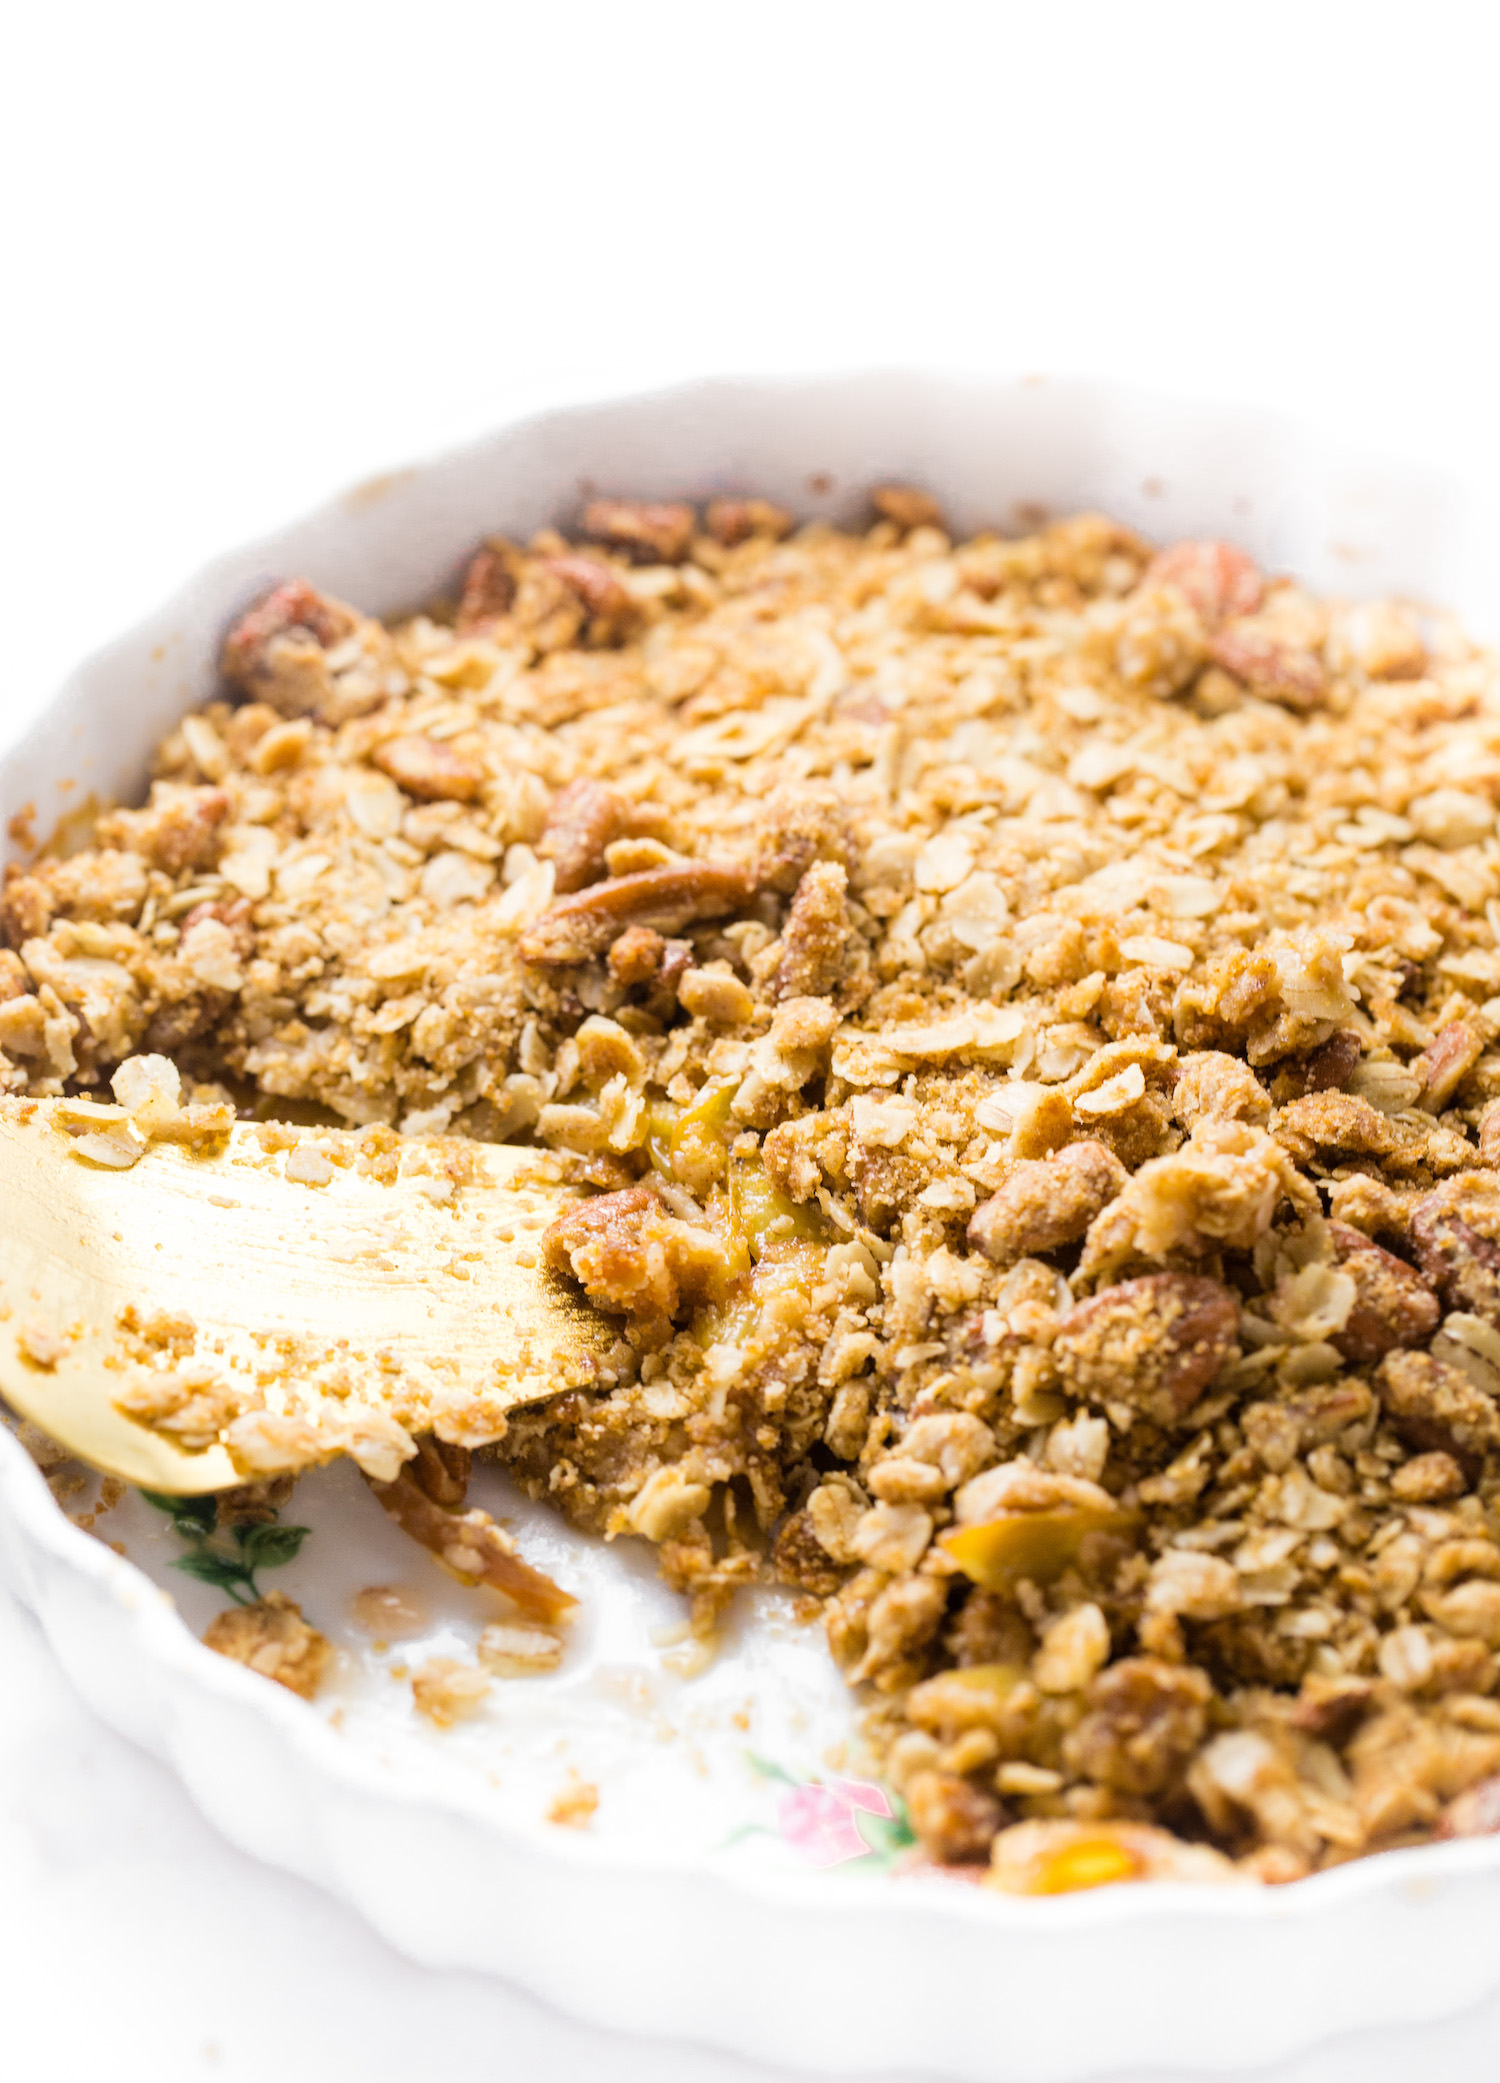 Nectarine Oat Pecan Crumble: sweet, juicy, tender nectarines topped with a crunchy, tasty pecan oat crumble. So easy and good! | TrufflesandTrends.com